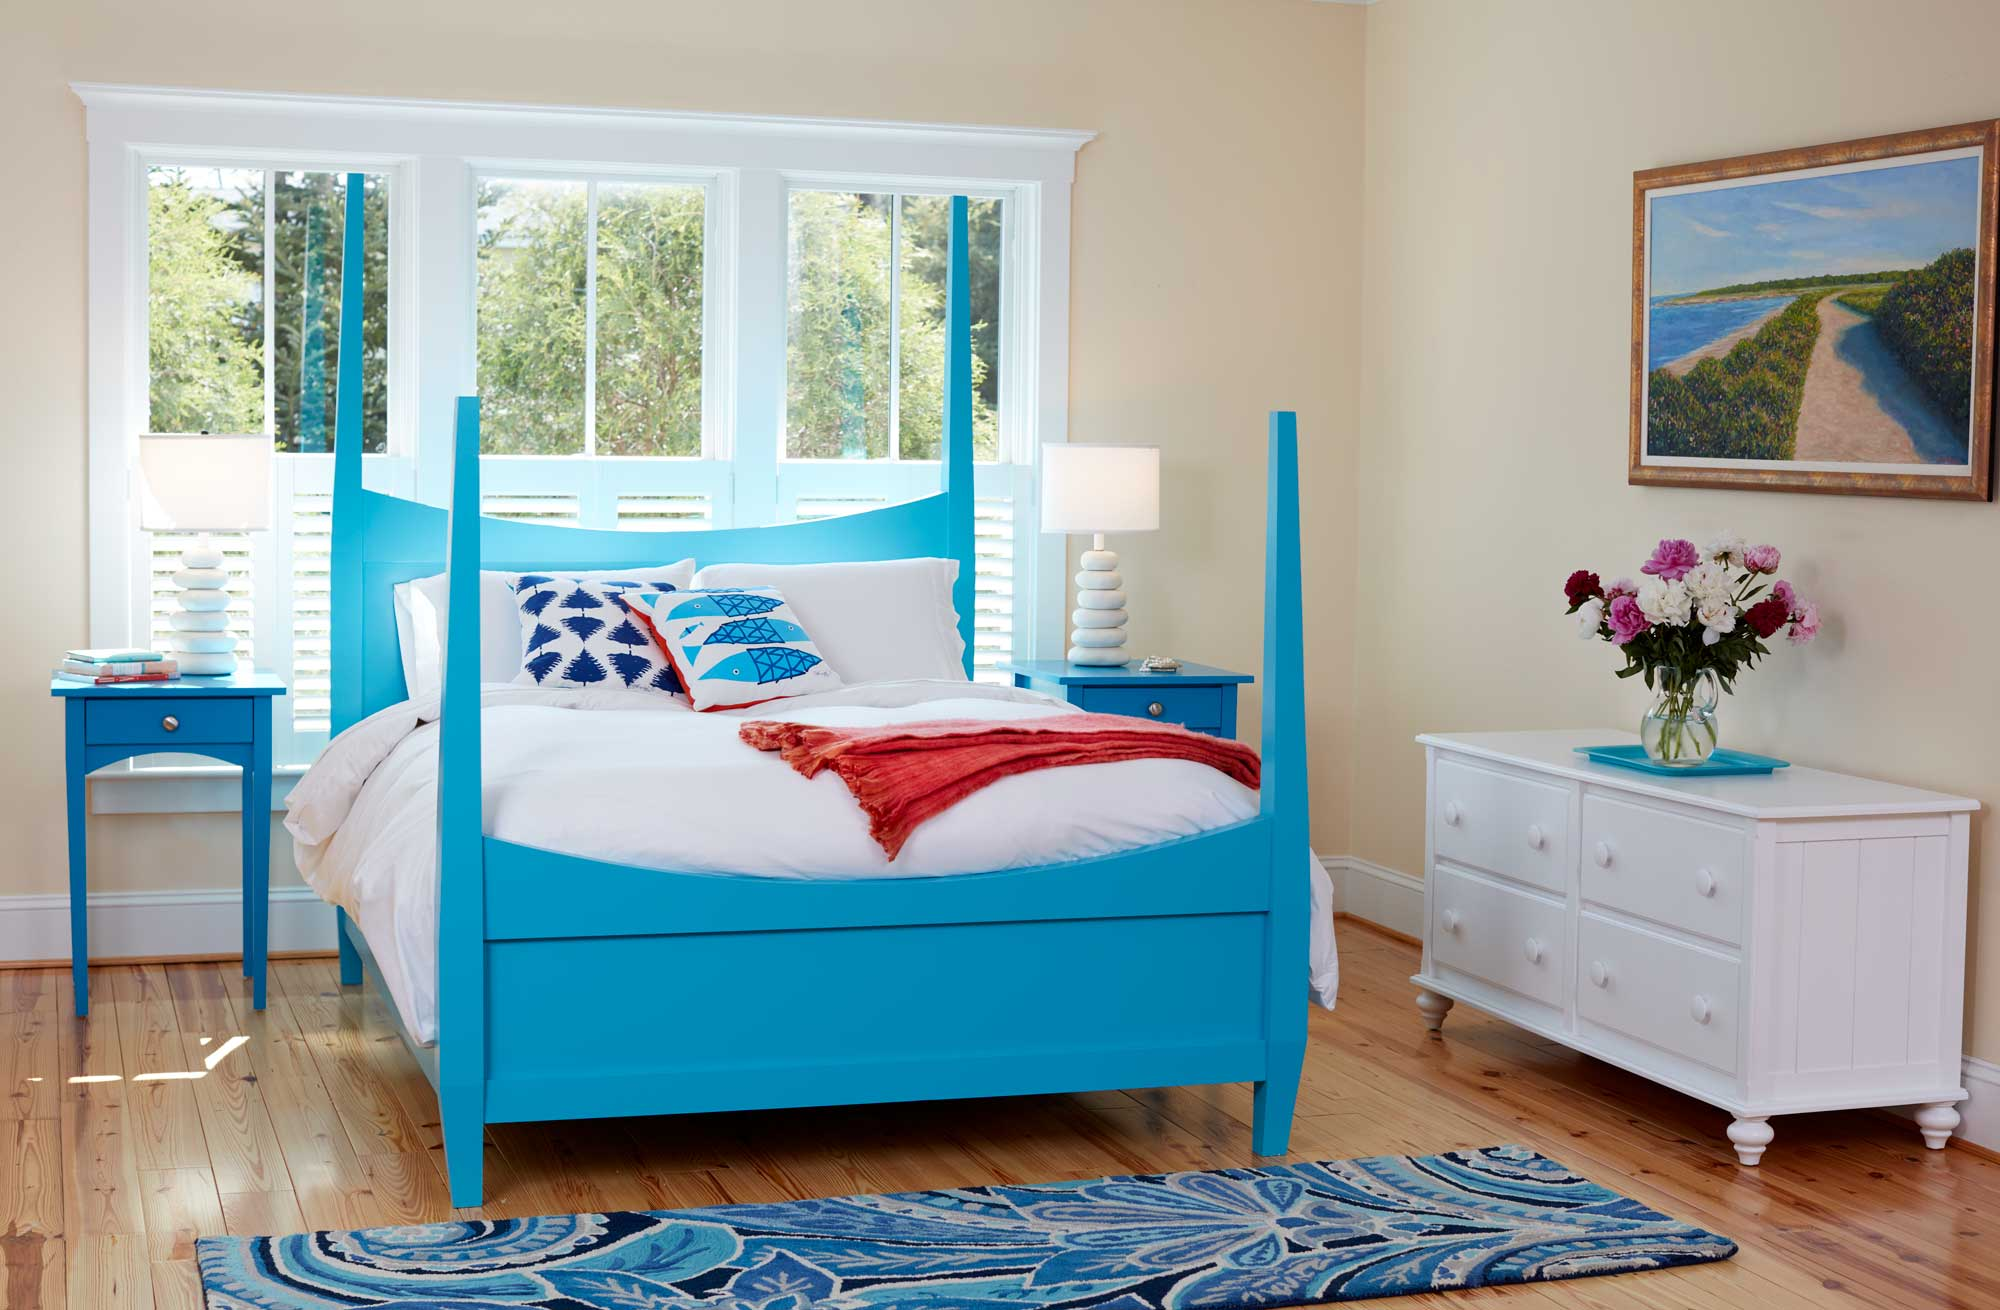 MWW_FerryBeach_2017_Bed_VinalHaven_Holiday_01_Edit_Web.jpg